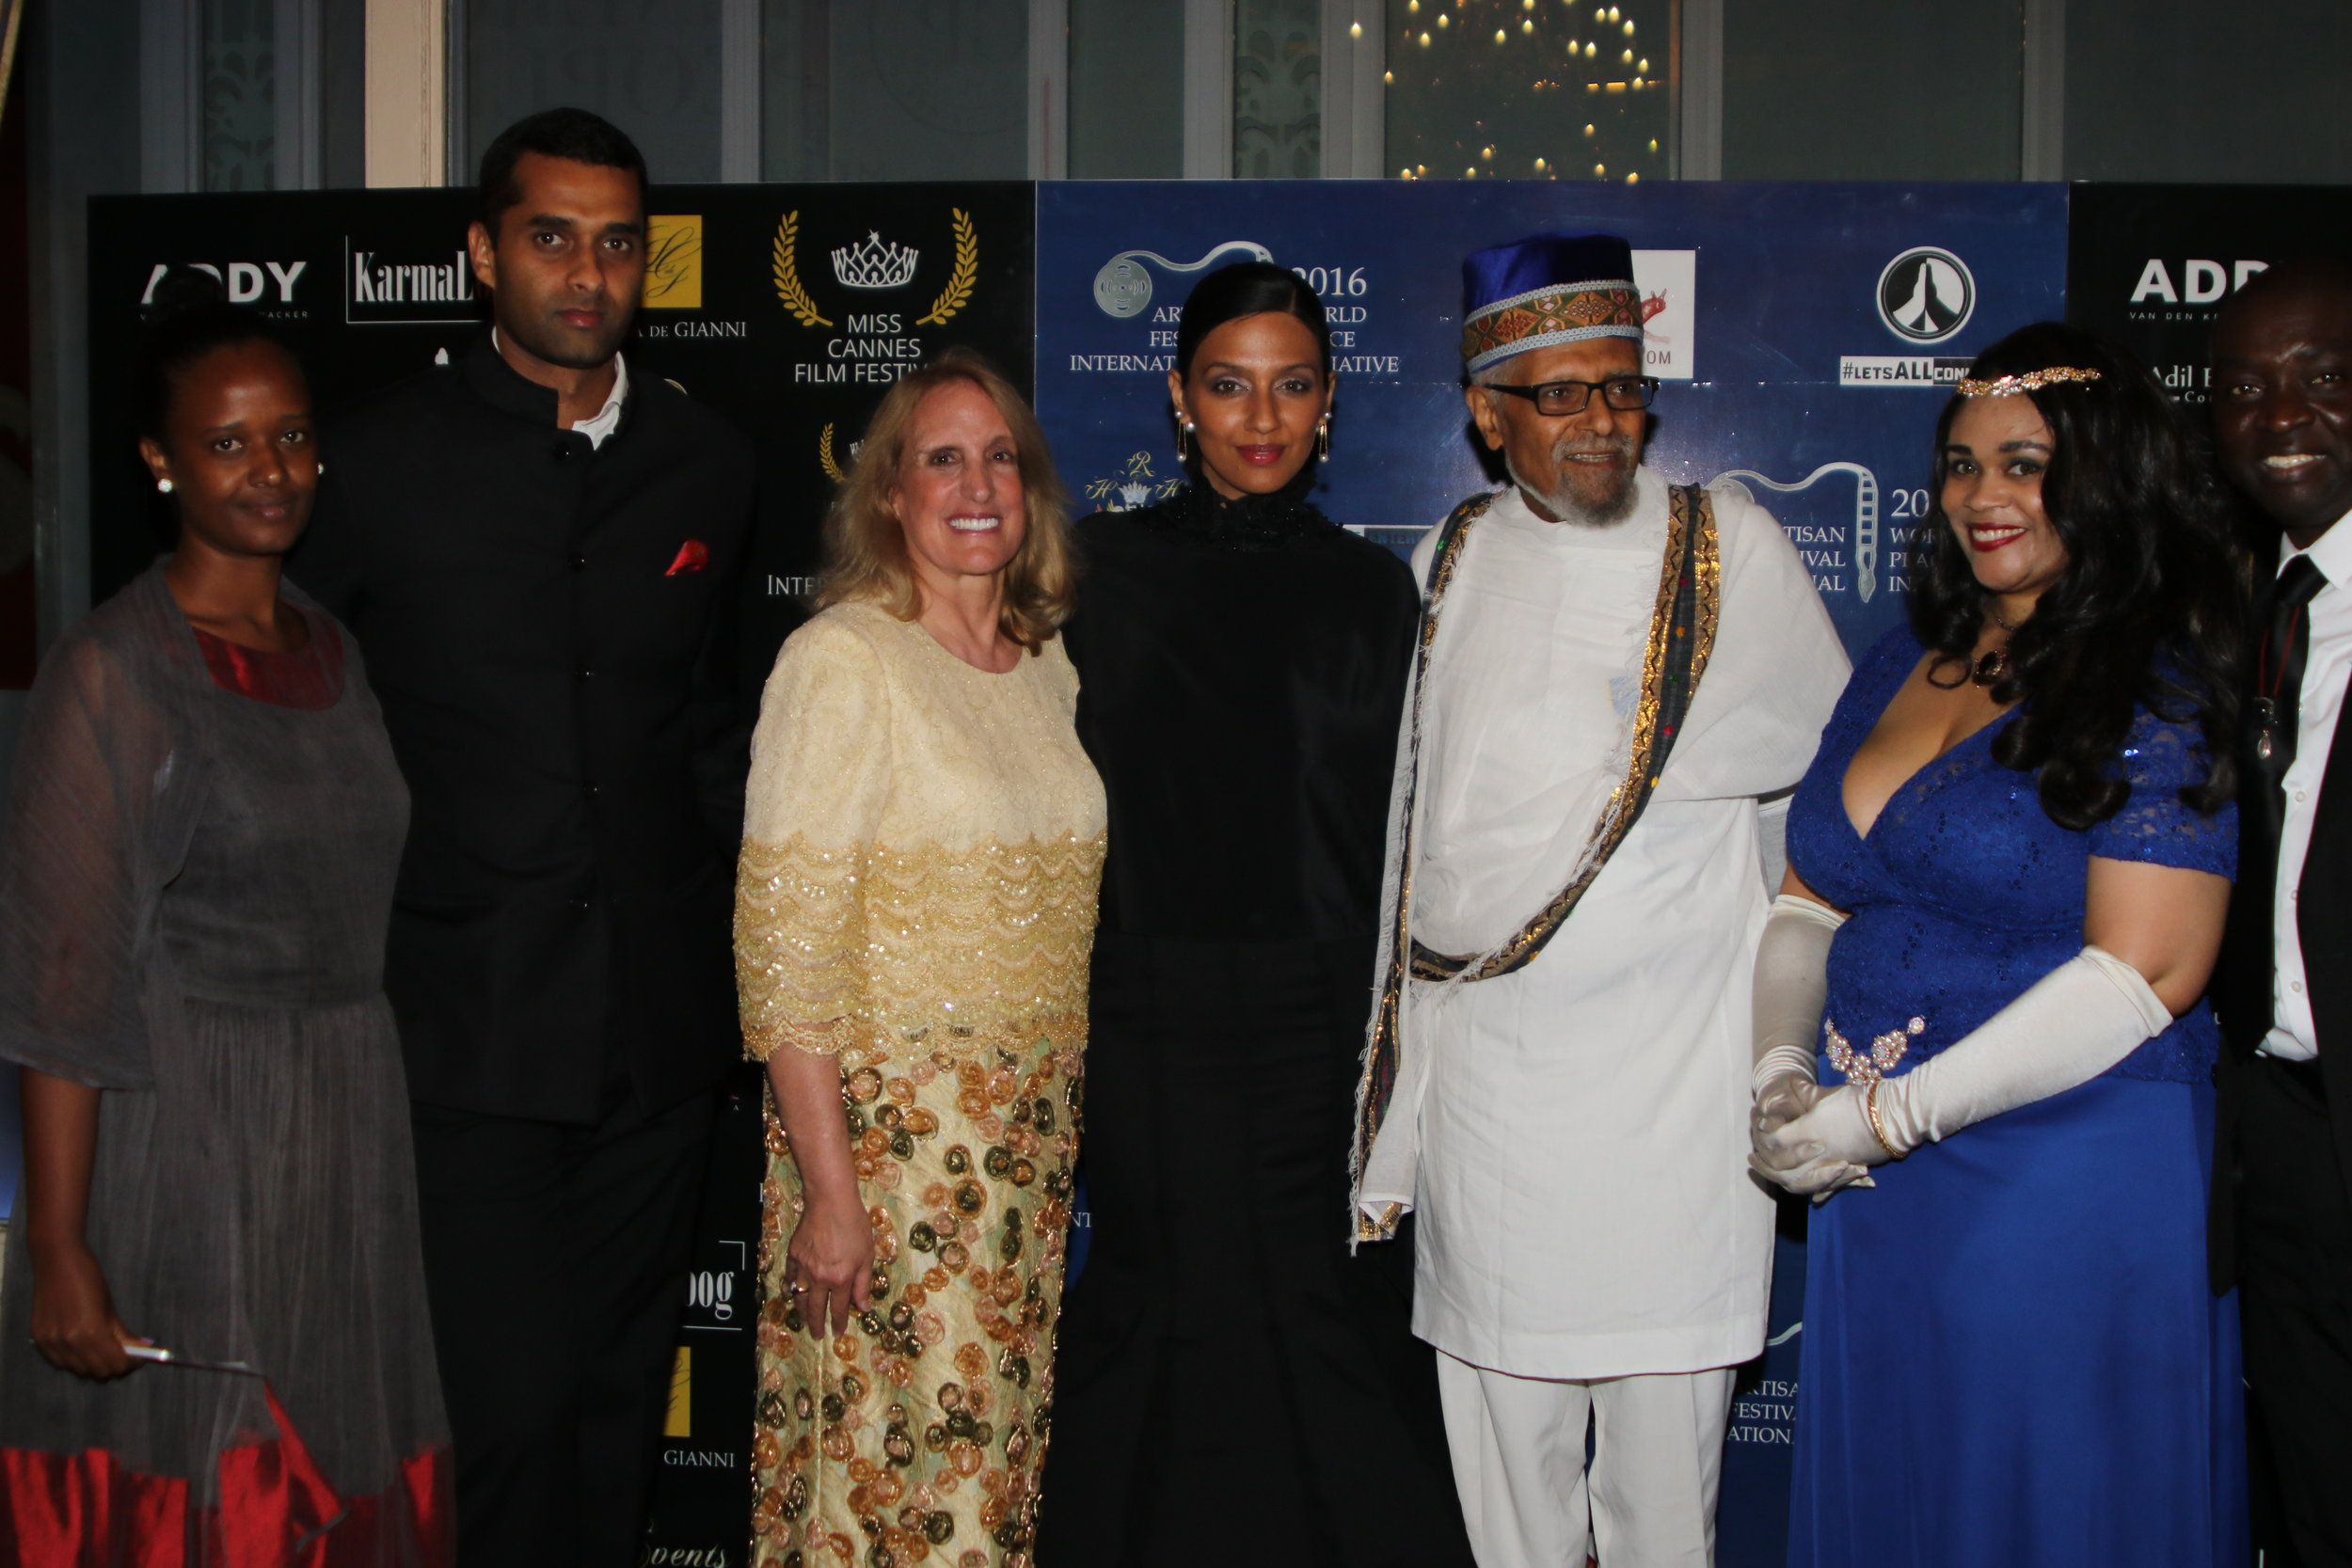 Cast and Producers of Two Zions: The Living Legacy of the Queen of Sheba and King Solomon. Producer  Cheryl Halpern  and Dr. Ephraim Isaac with A.F.I./W.P.I. Founder HRH Princess Angelique Monét.